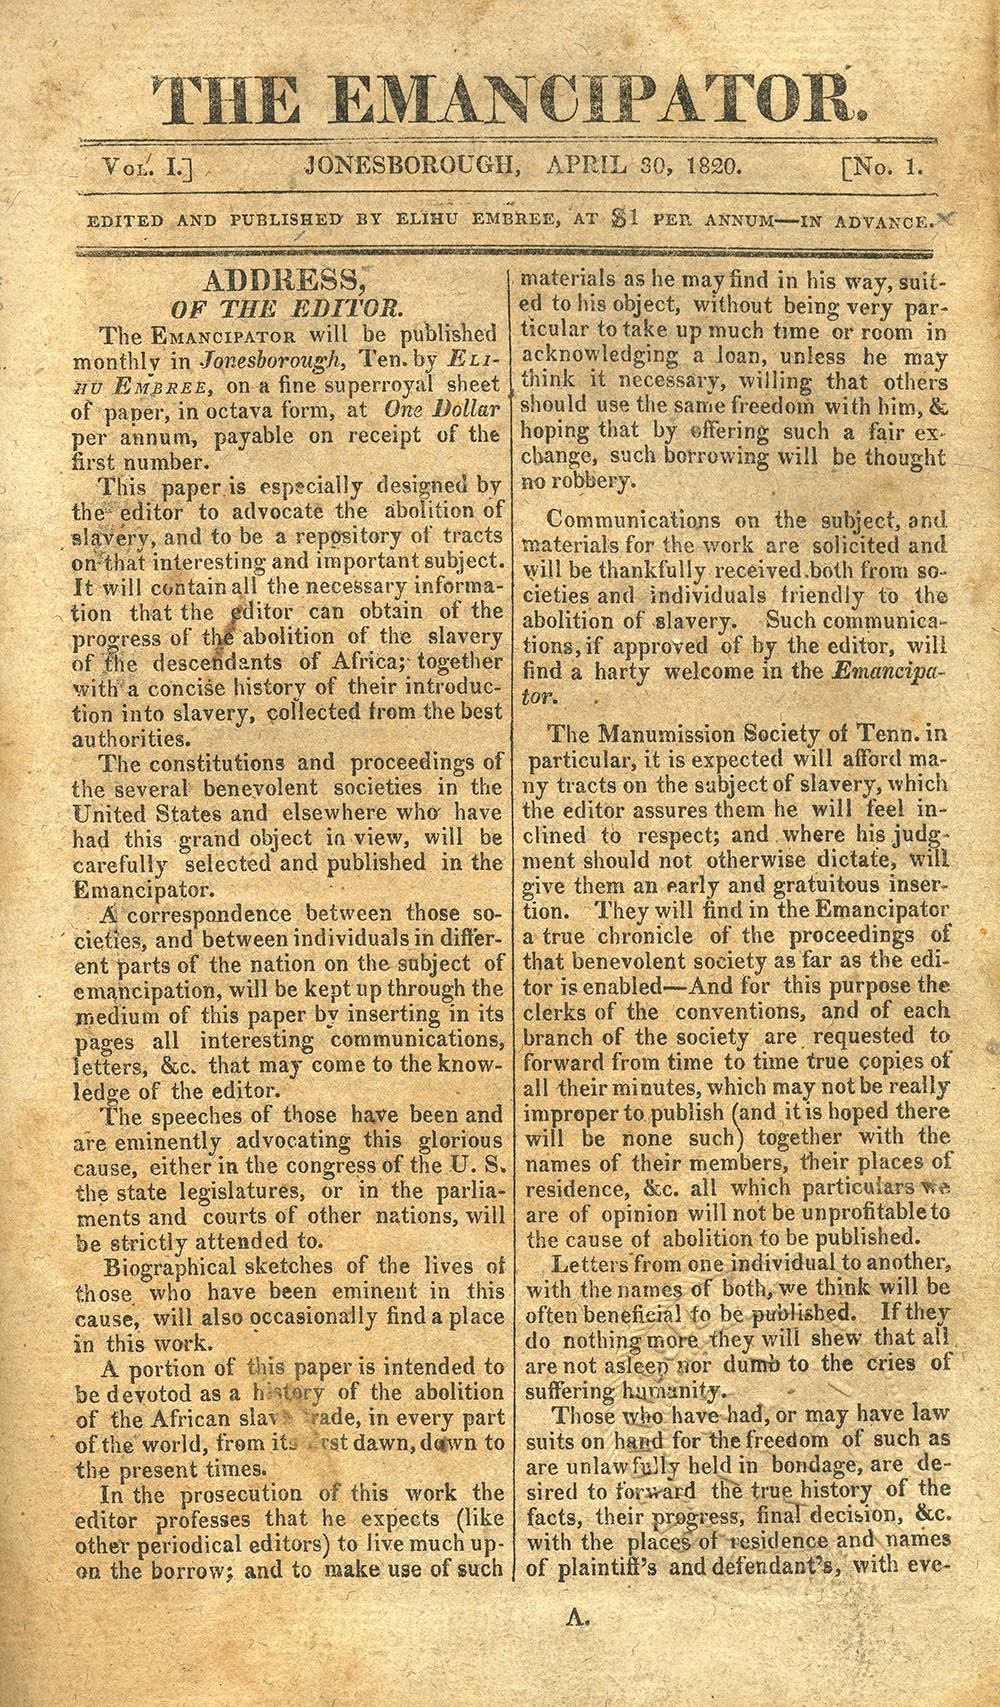 The Emancipator, one of America's first anti-slavery newspapers